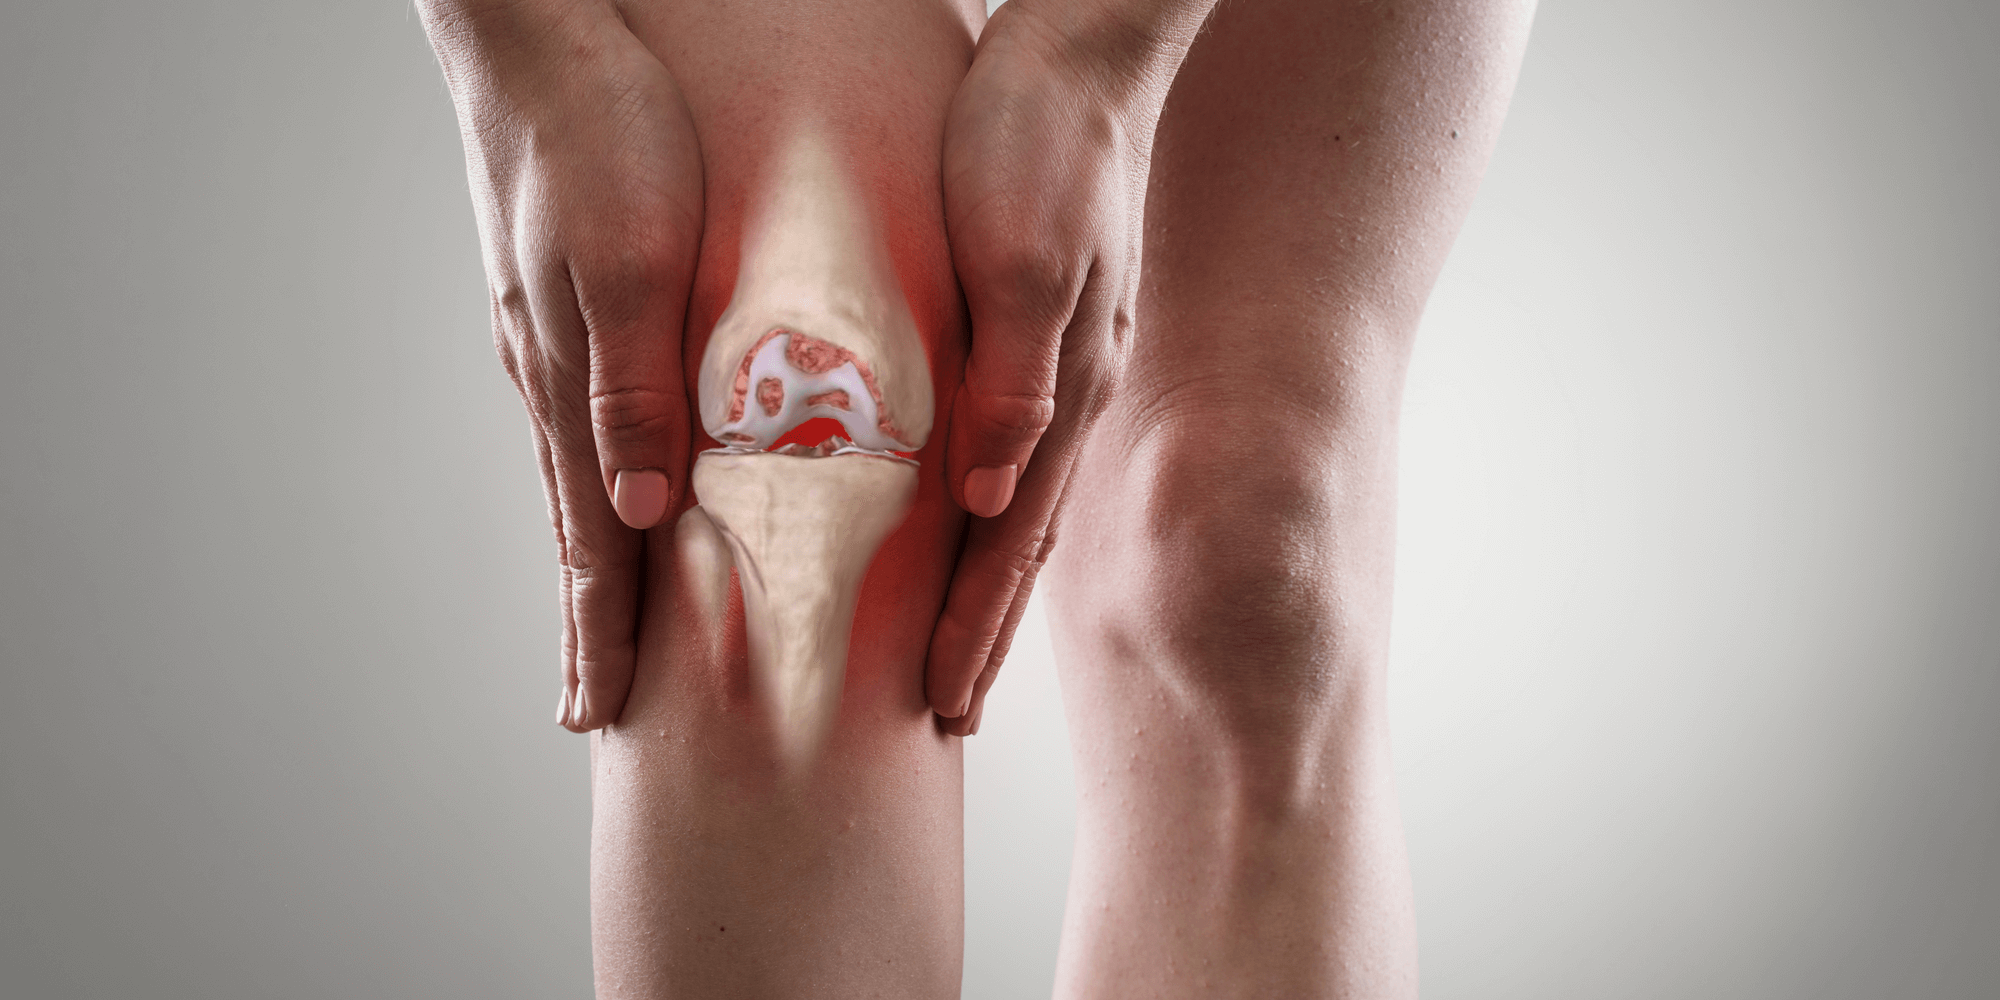 What is Osteoarthritis, and how is it treated?